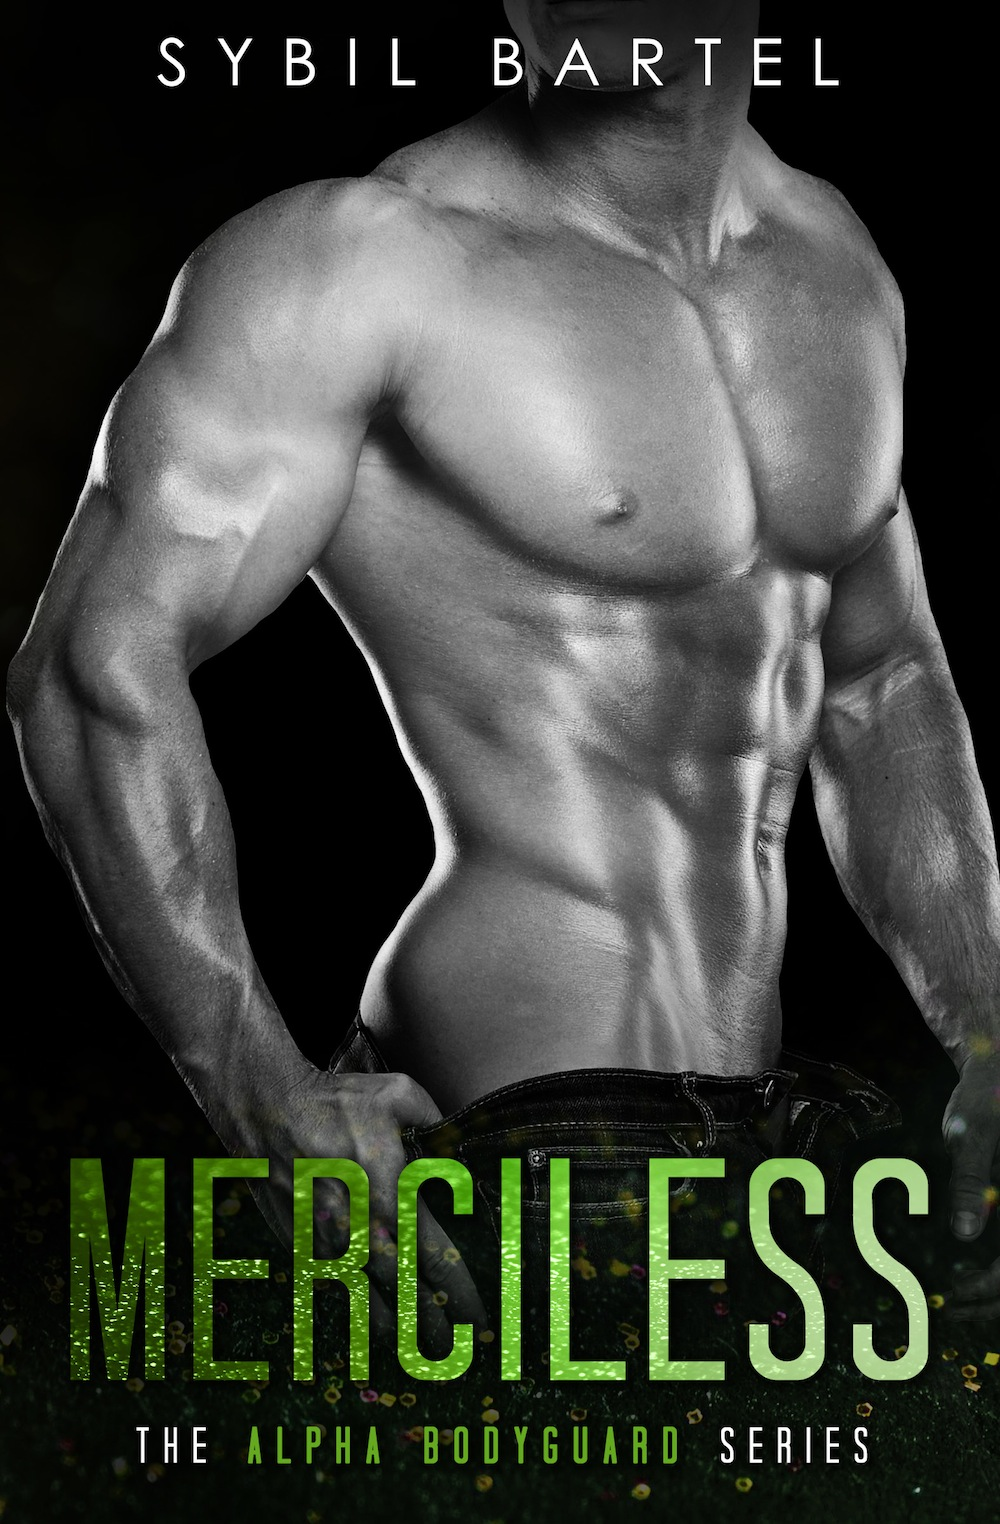 Merciless (Alpha Bodyguard #2) by Sybil Bartel Cover Reveal